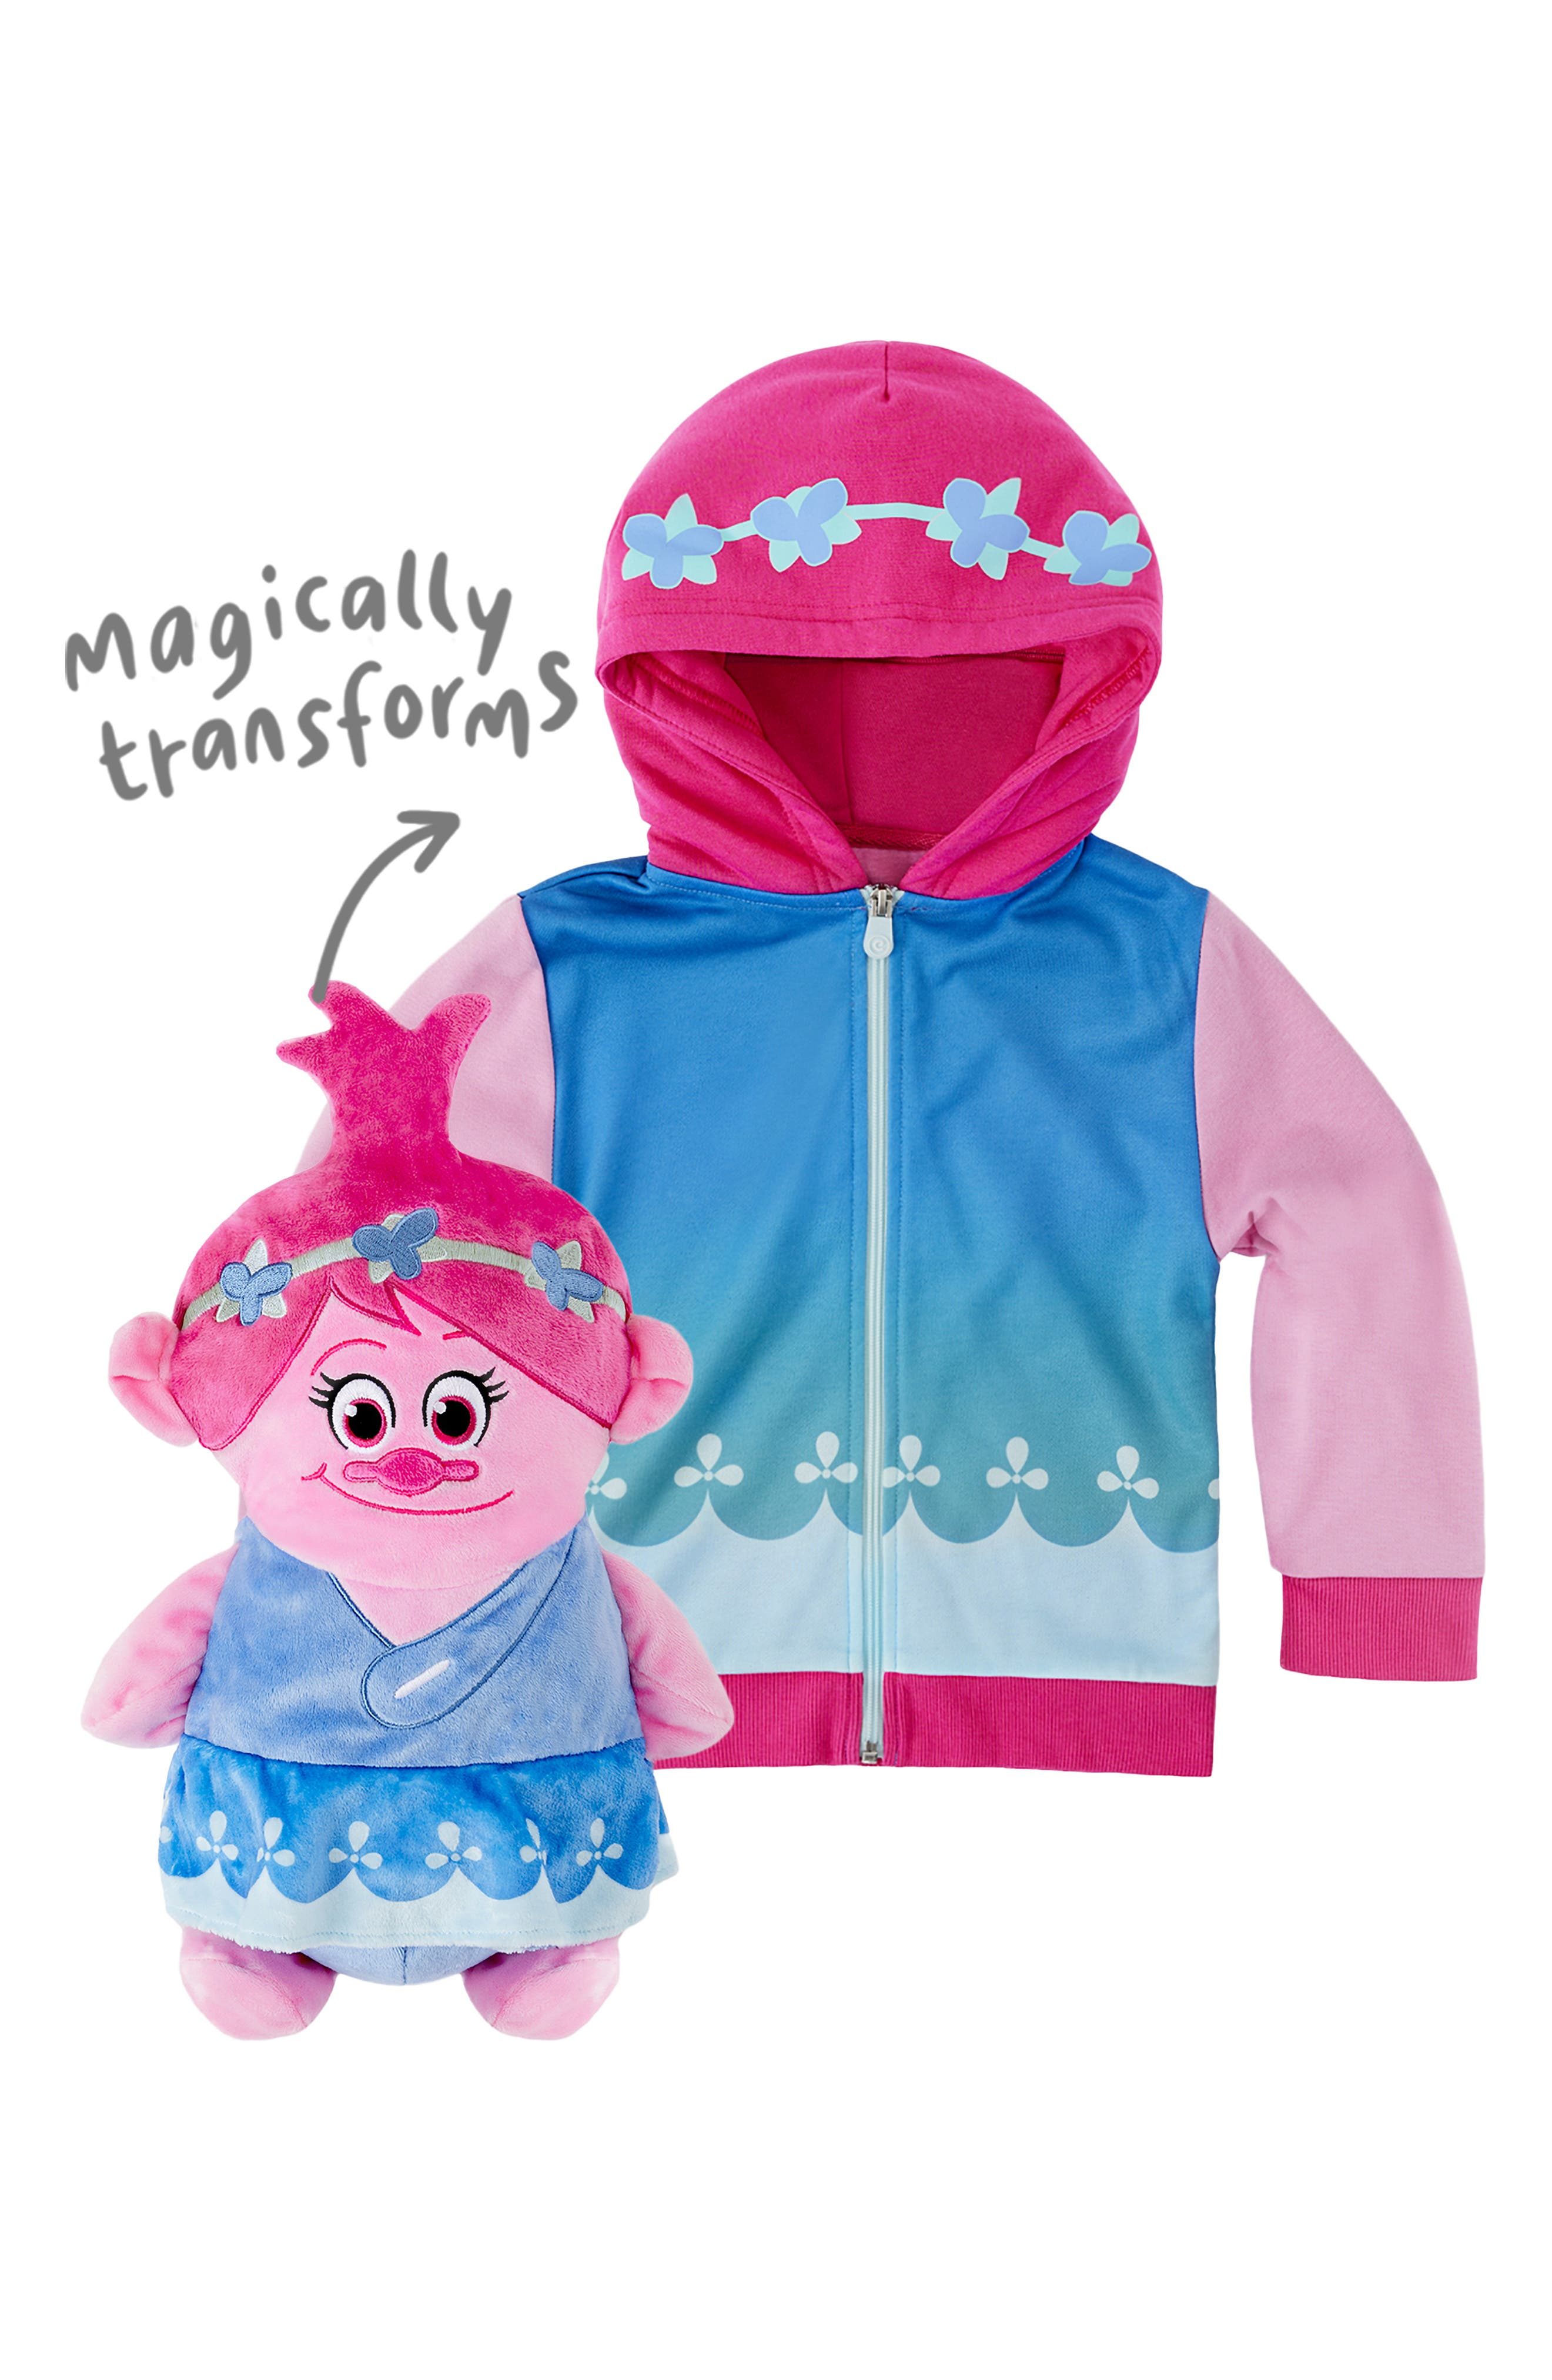 CUBCOATS, DreamWorks Trolls Poppy 2-in-1 Stuffed Animal Hoodie, Alternate thumbnail 3, color, PINK MIX